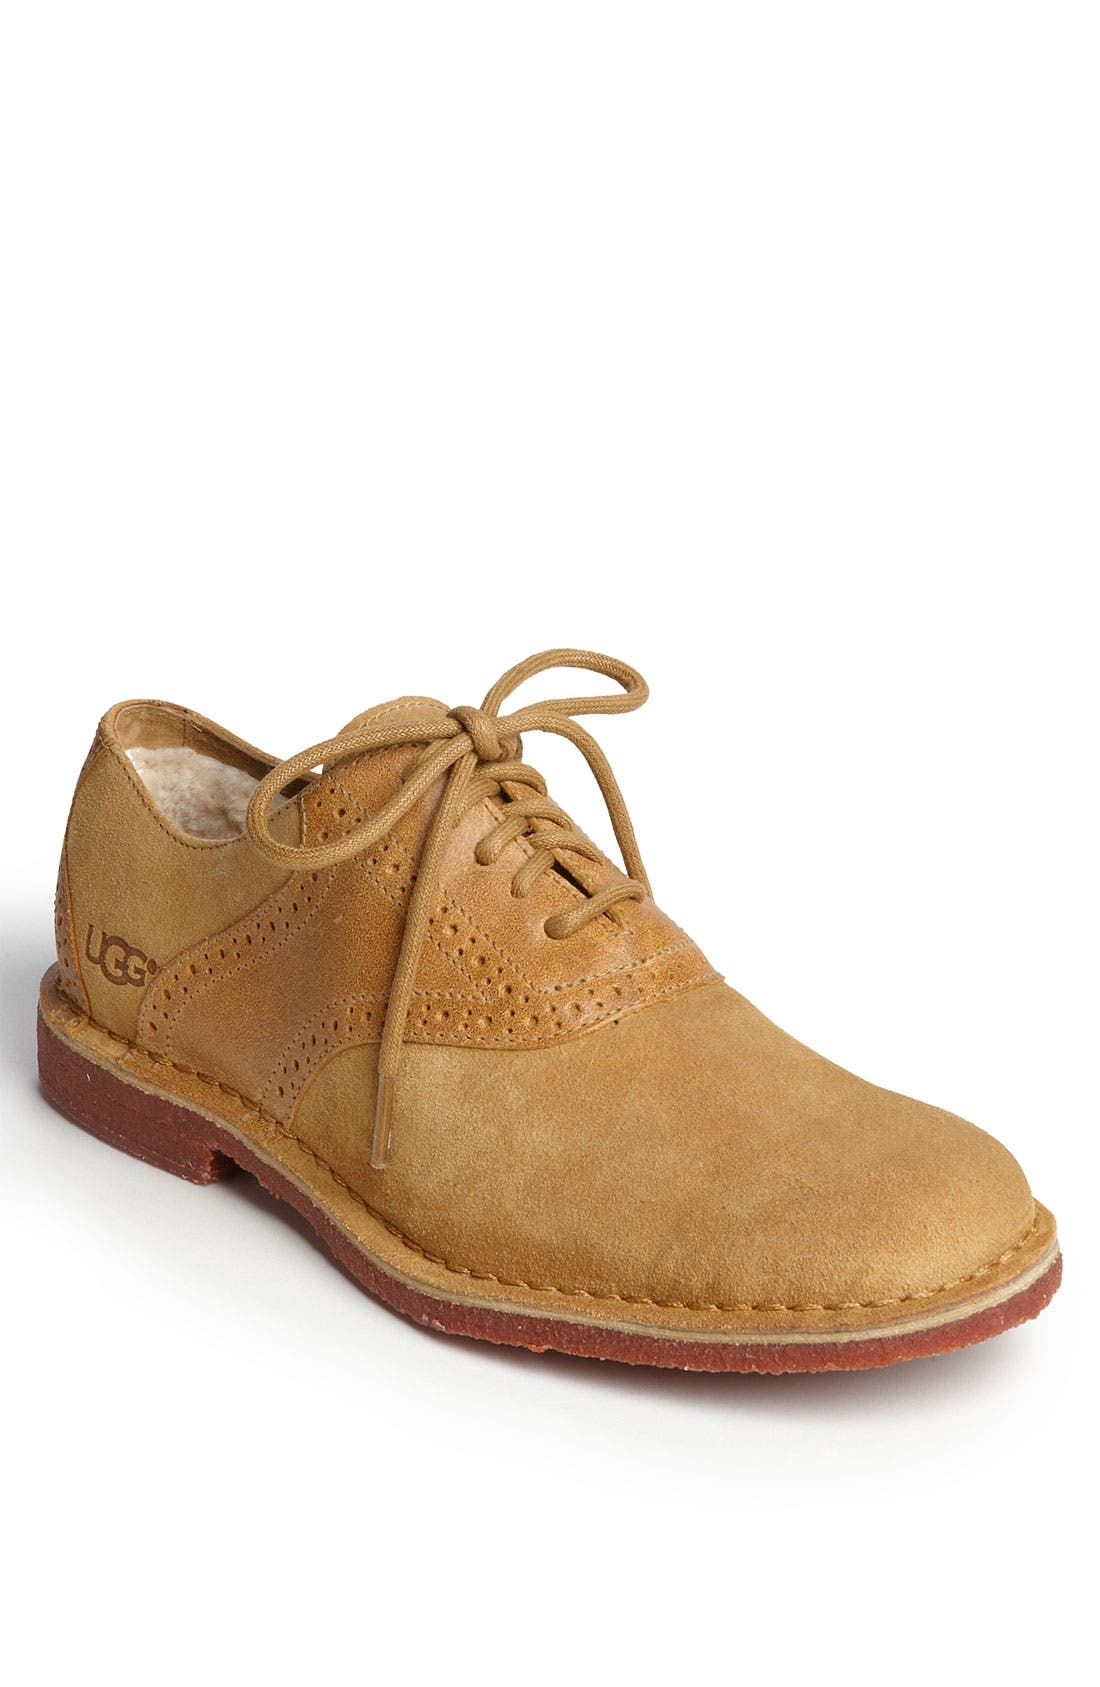 Alternate Image 1 Selected - UGG® Australia Saddle Oxford (Men)